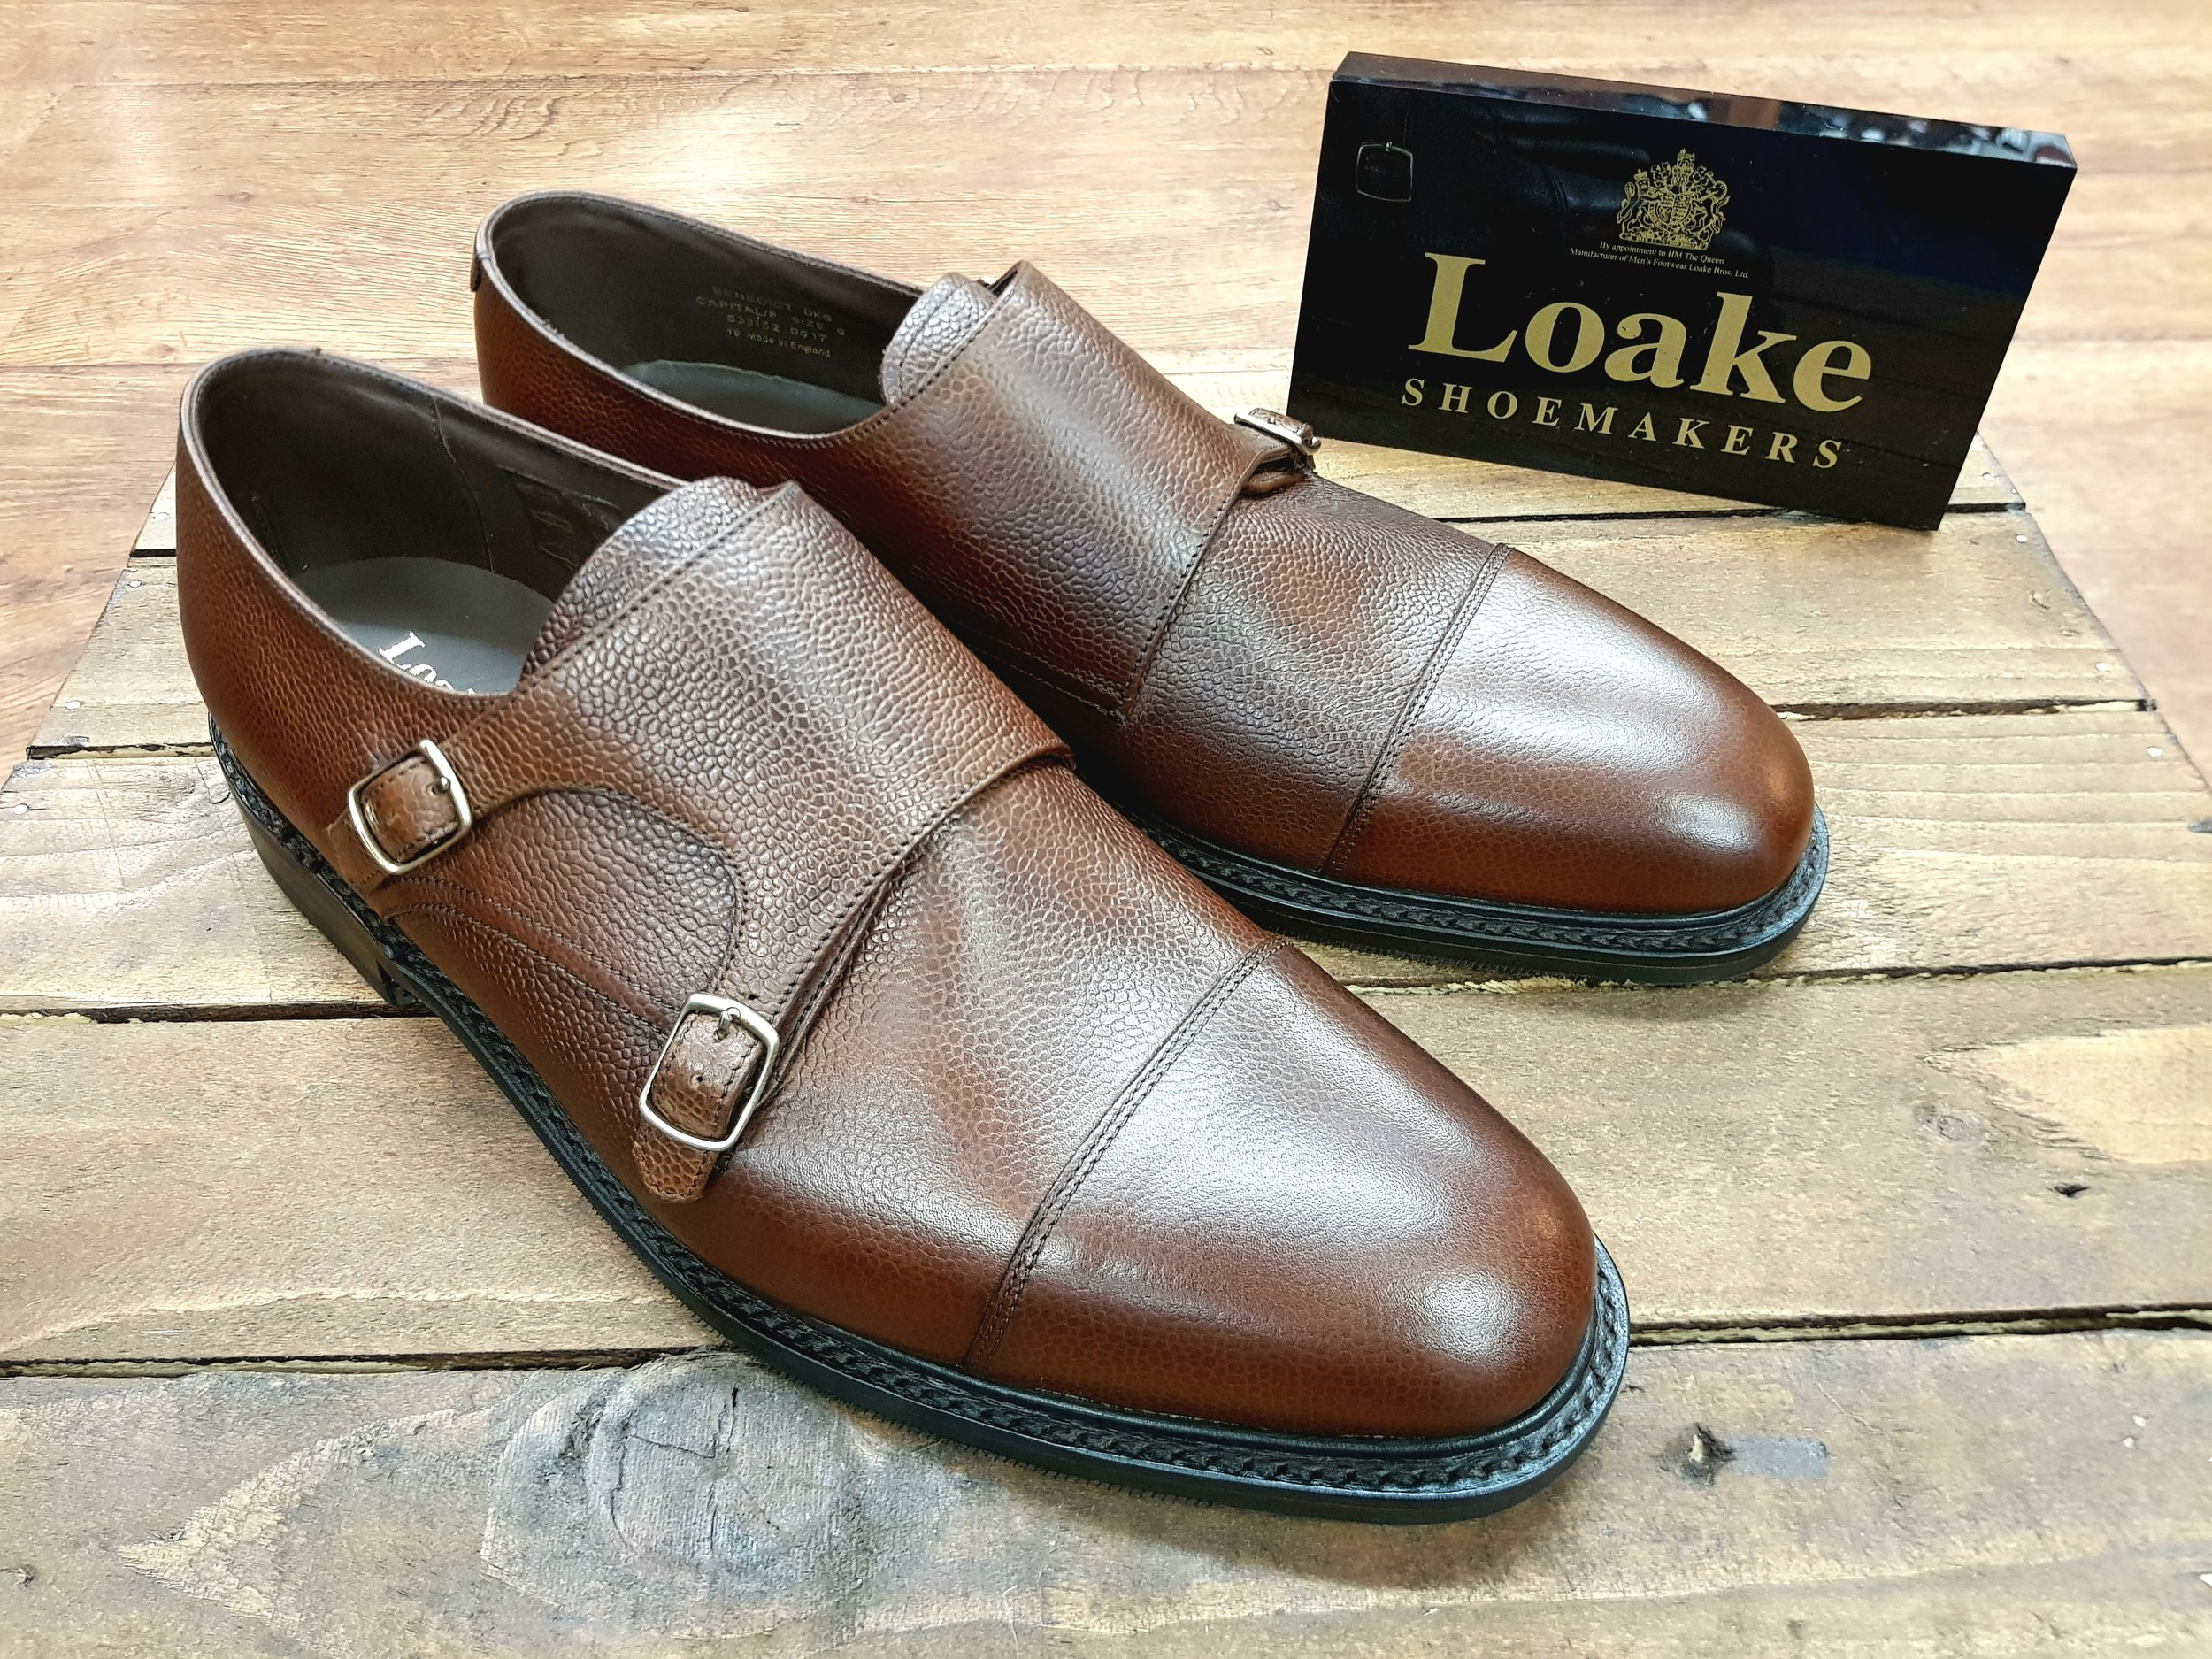 LOAKE: Benedict — The Whitby Cobbler